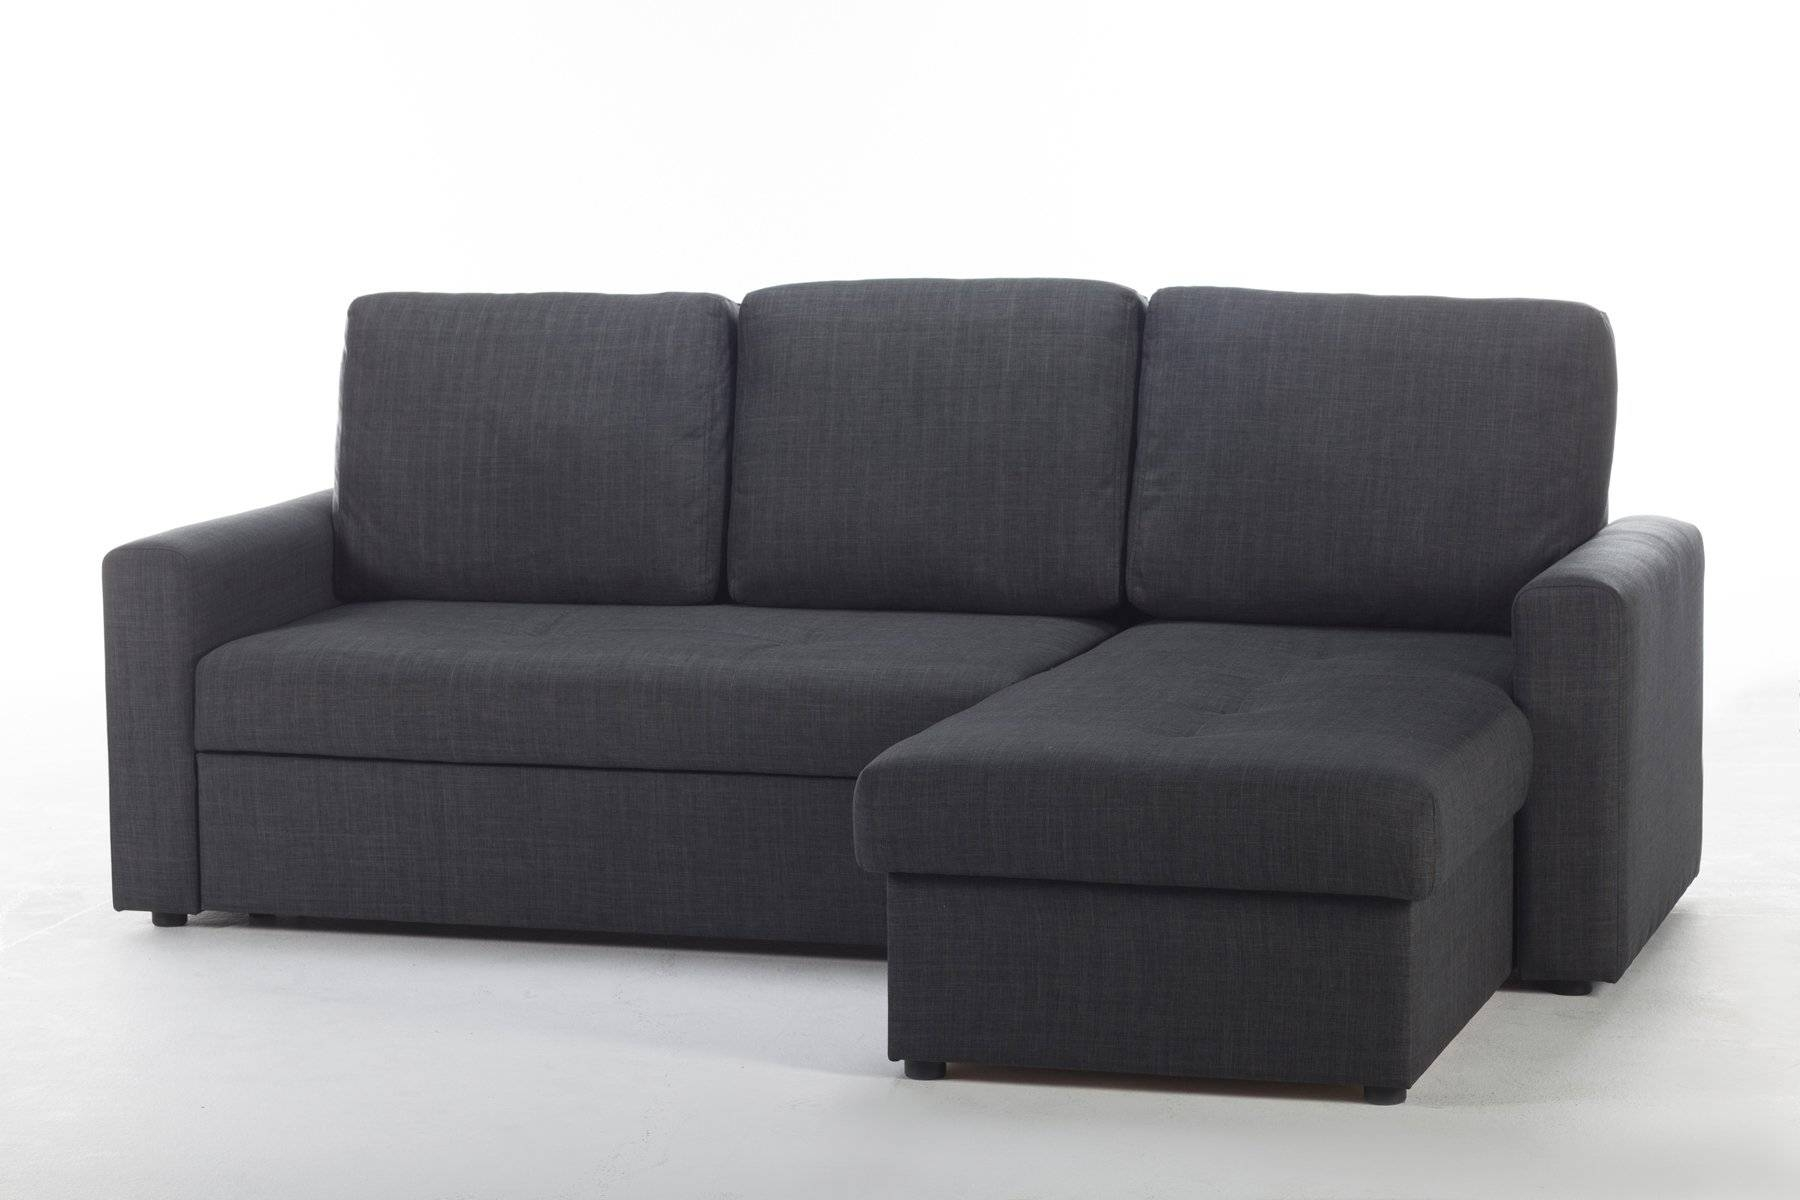 30 Collection of Cloth Sectional Sofas